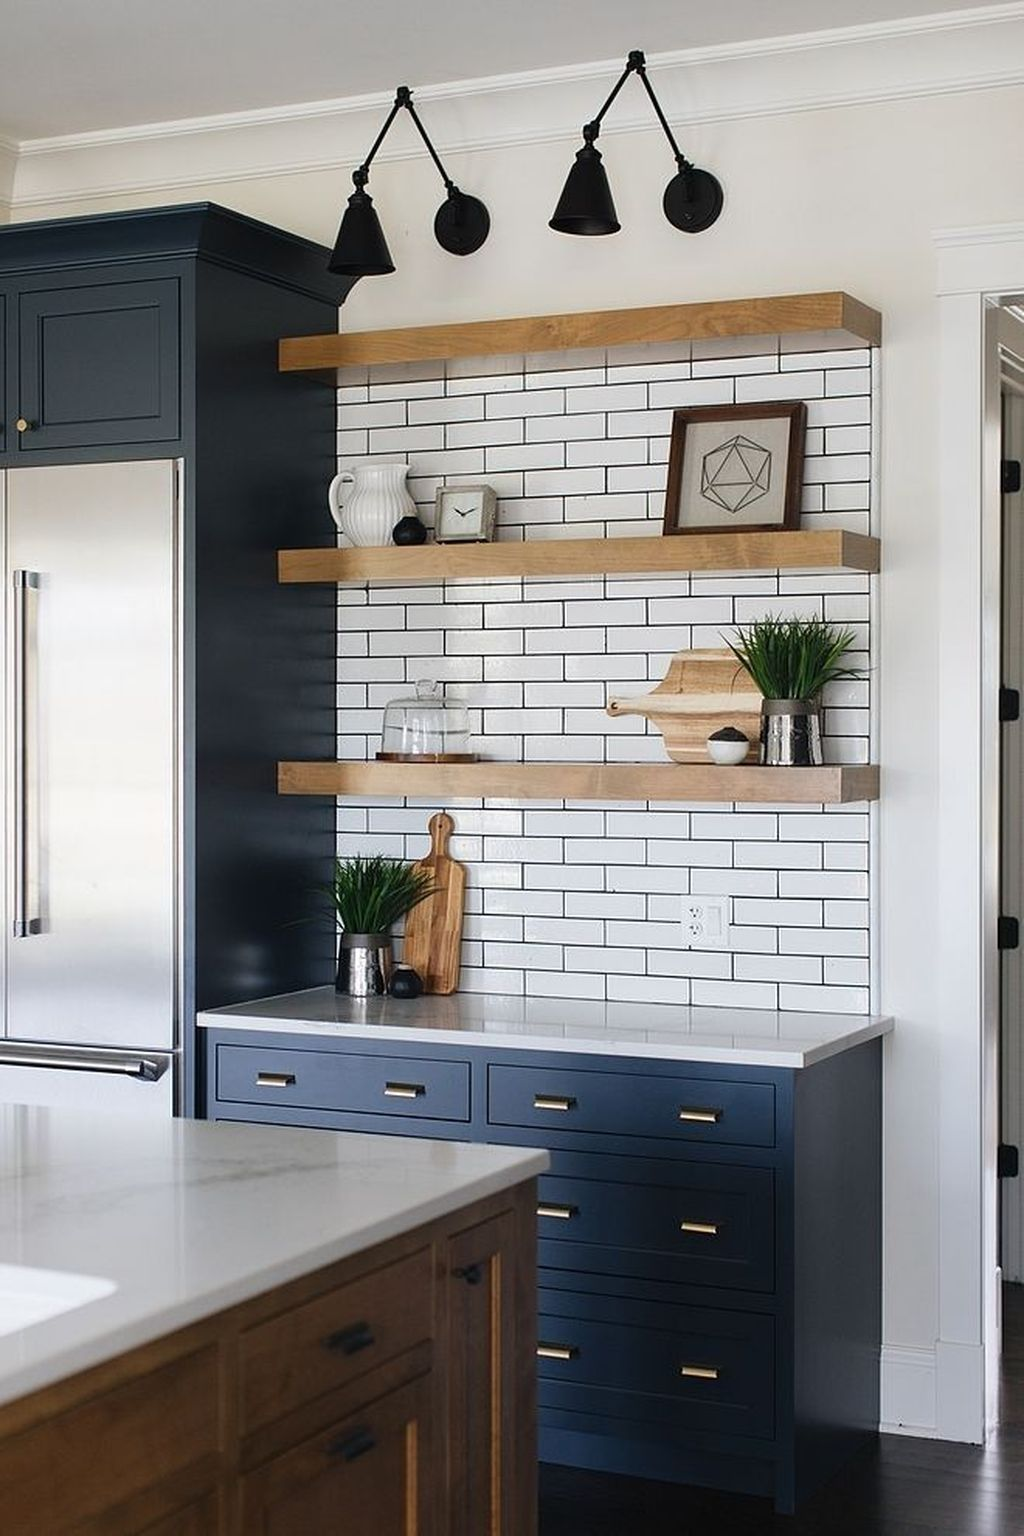 over dw to open up the kitchen??? | Farmhouse kitchen decor, Kitchen  remodel, Home kitchens